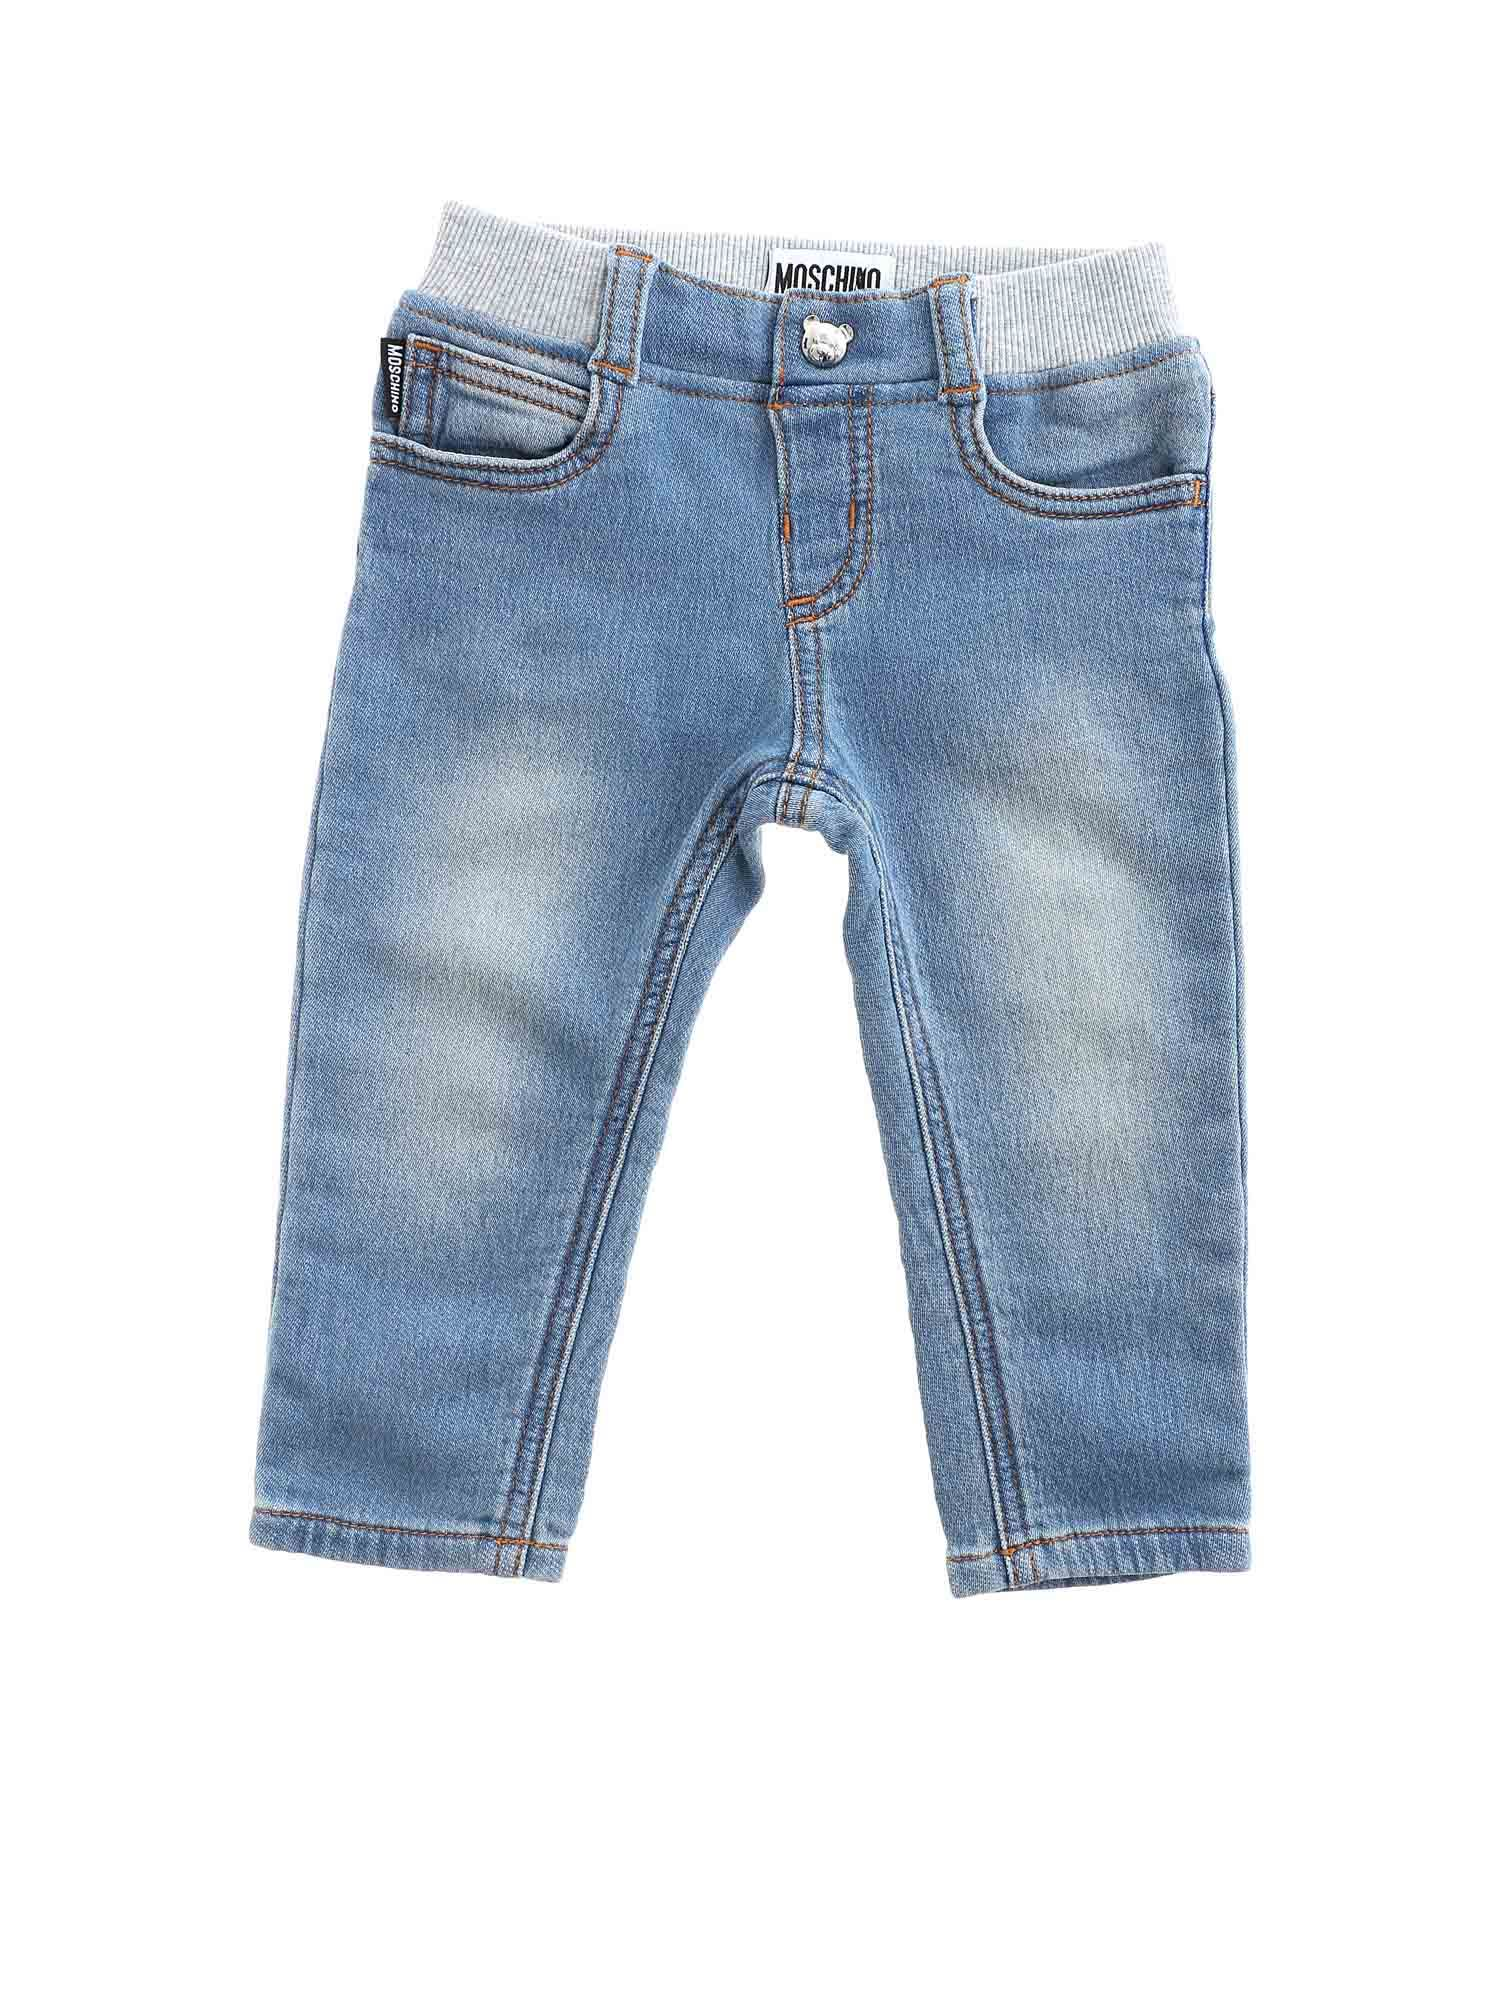 Moschino LOGO PATCH JEANS IN LIGHT BLUE